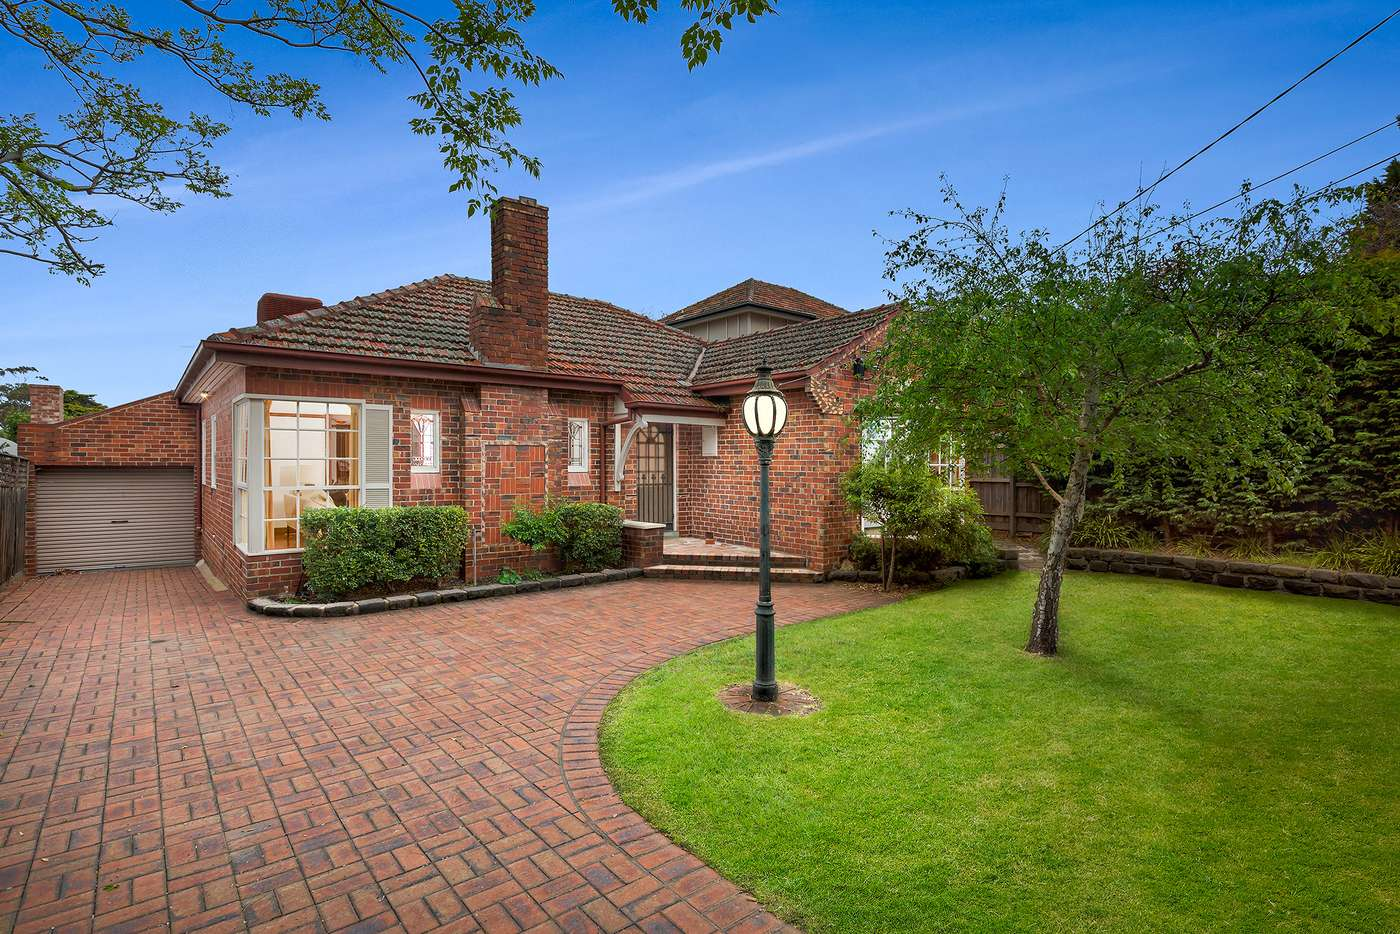 Main view of Homely house listing, 16 Dreadnought Street, Sandringham VIC 3191